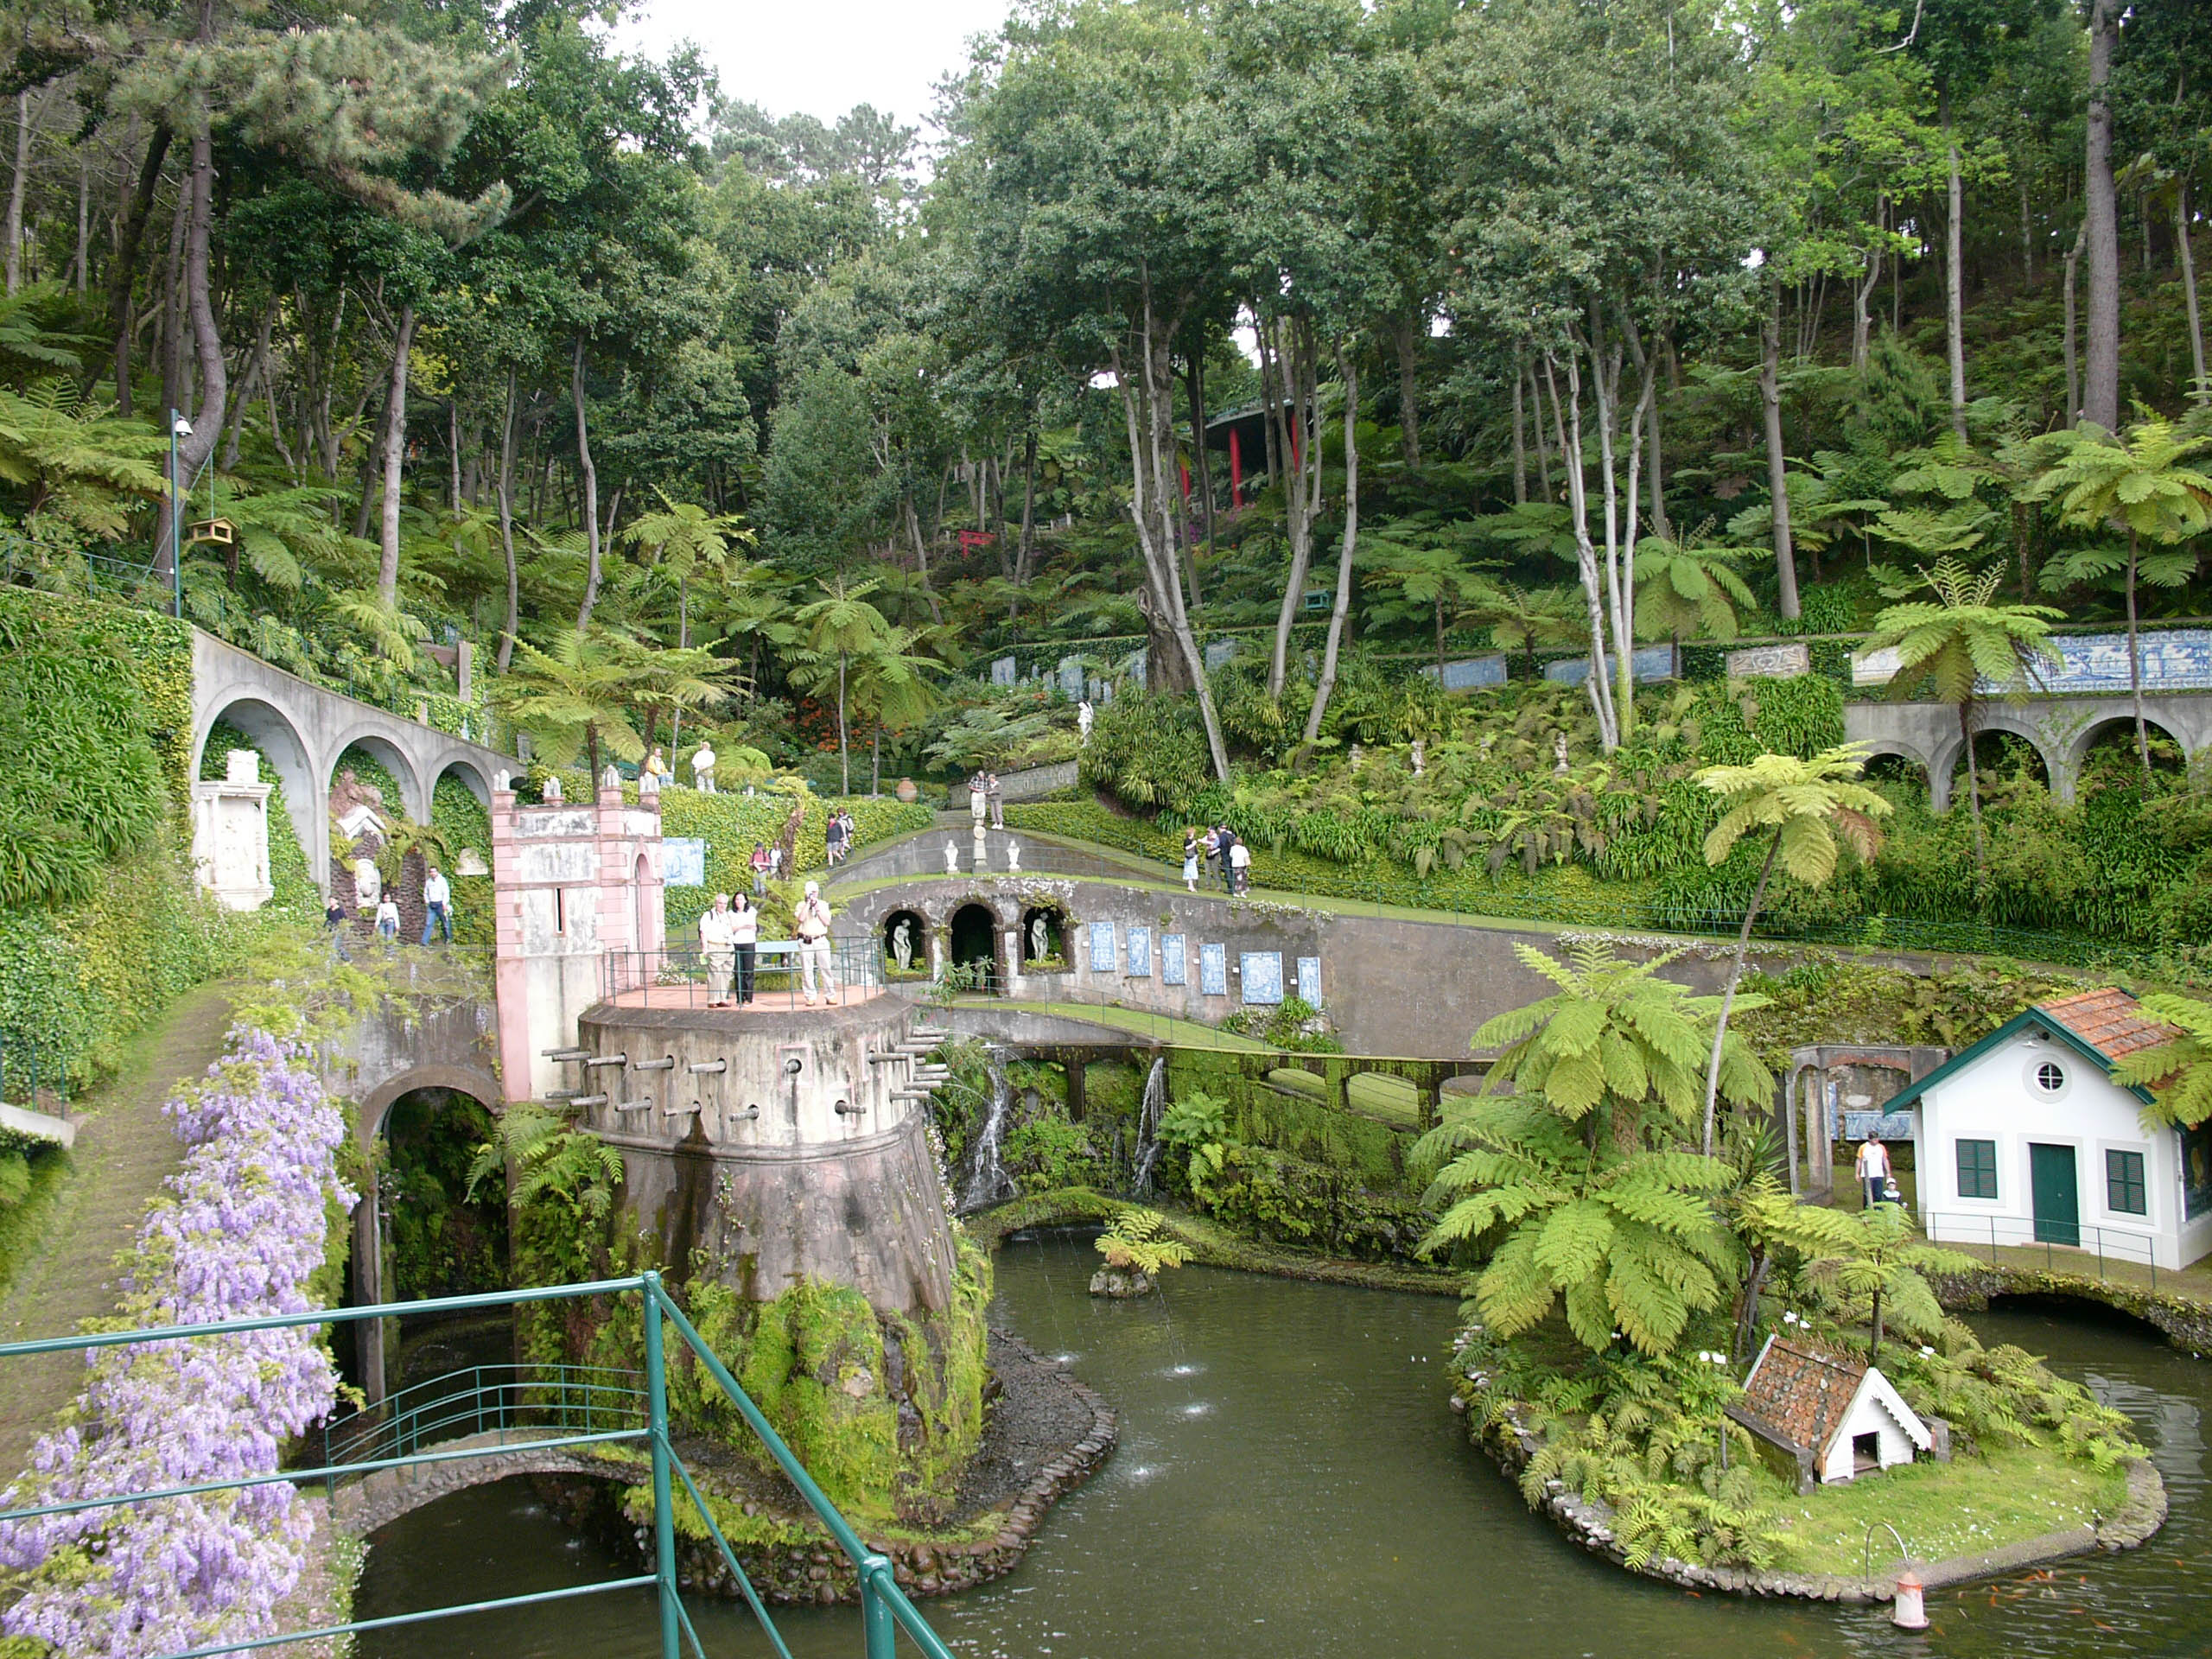 File:Tropical garden monte hg.jpg